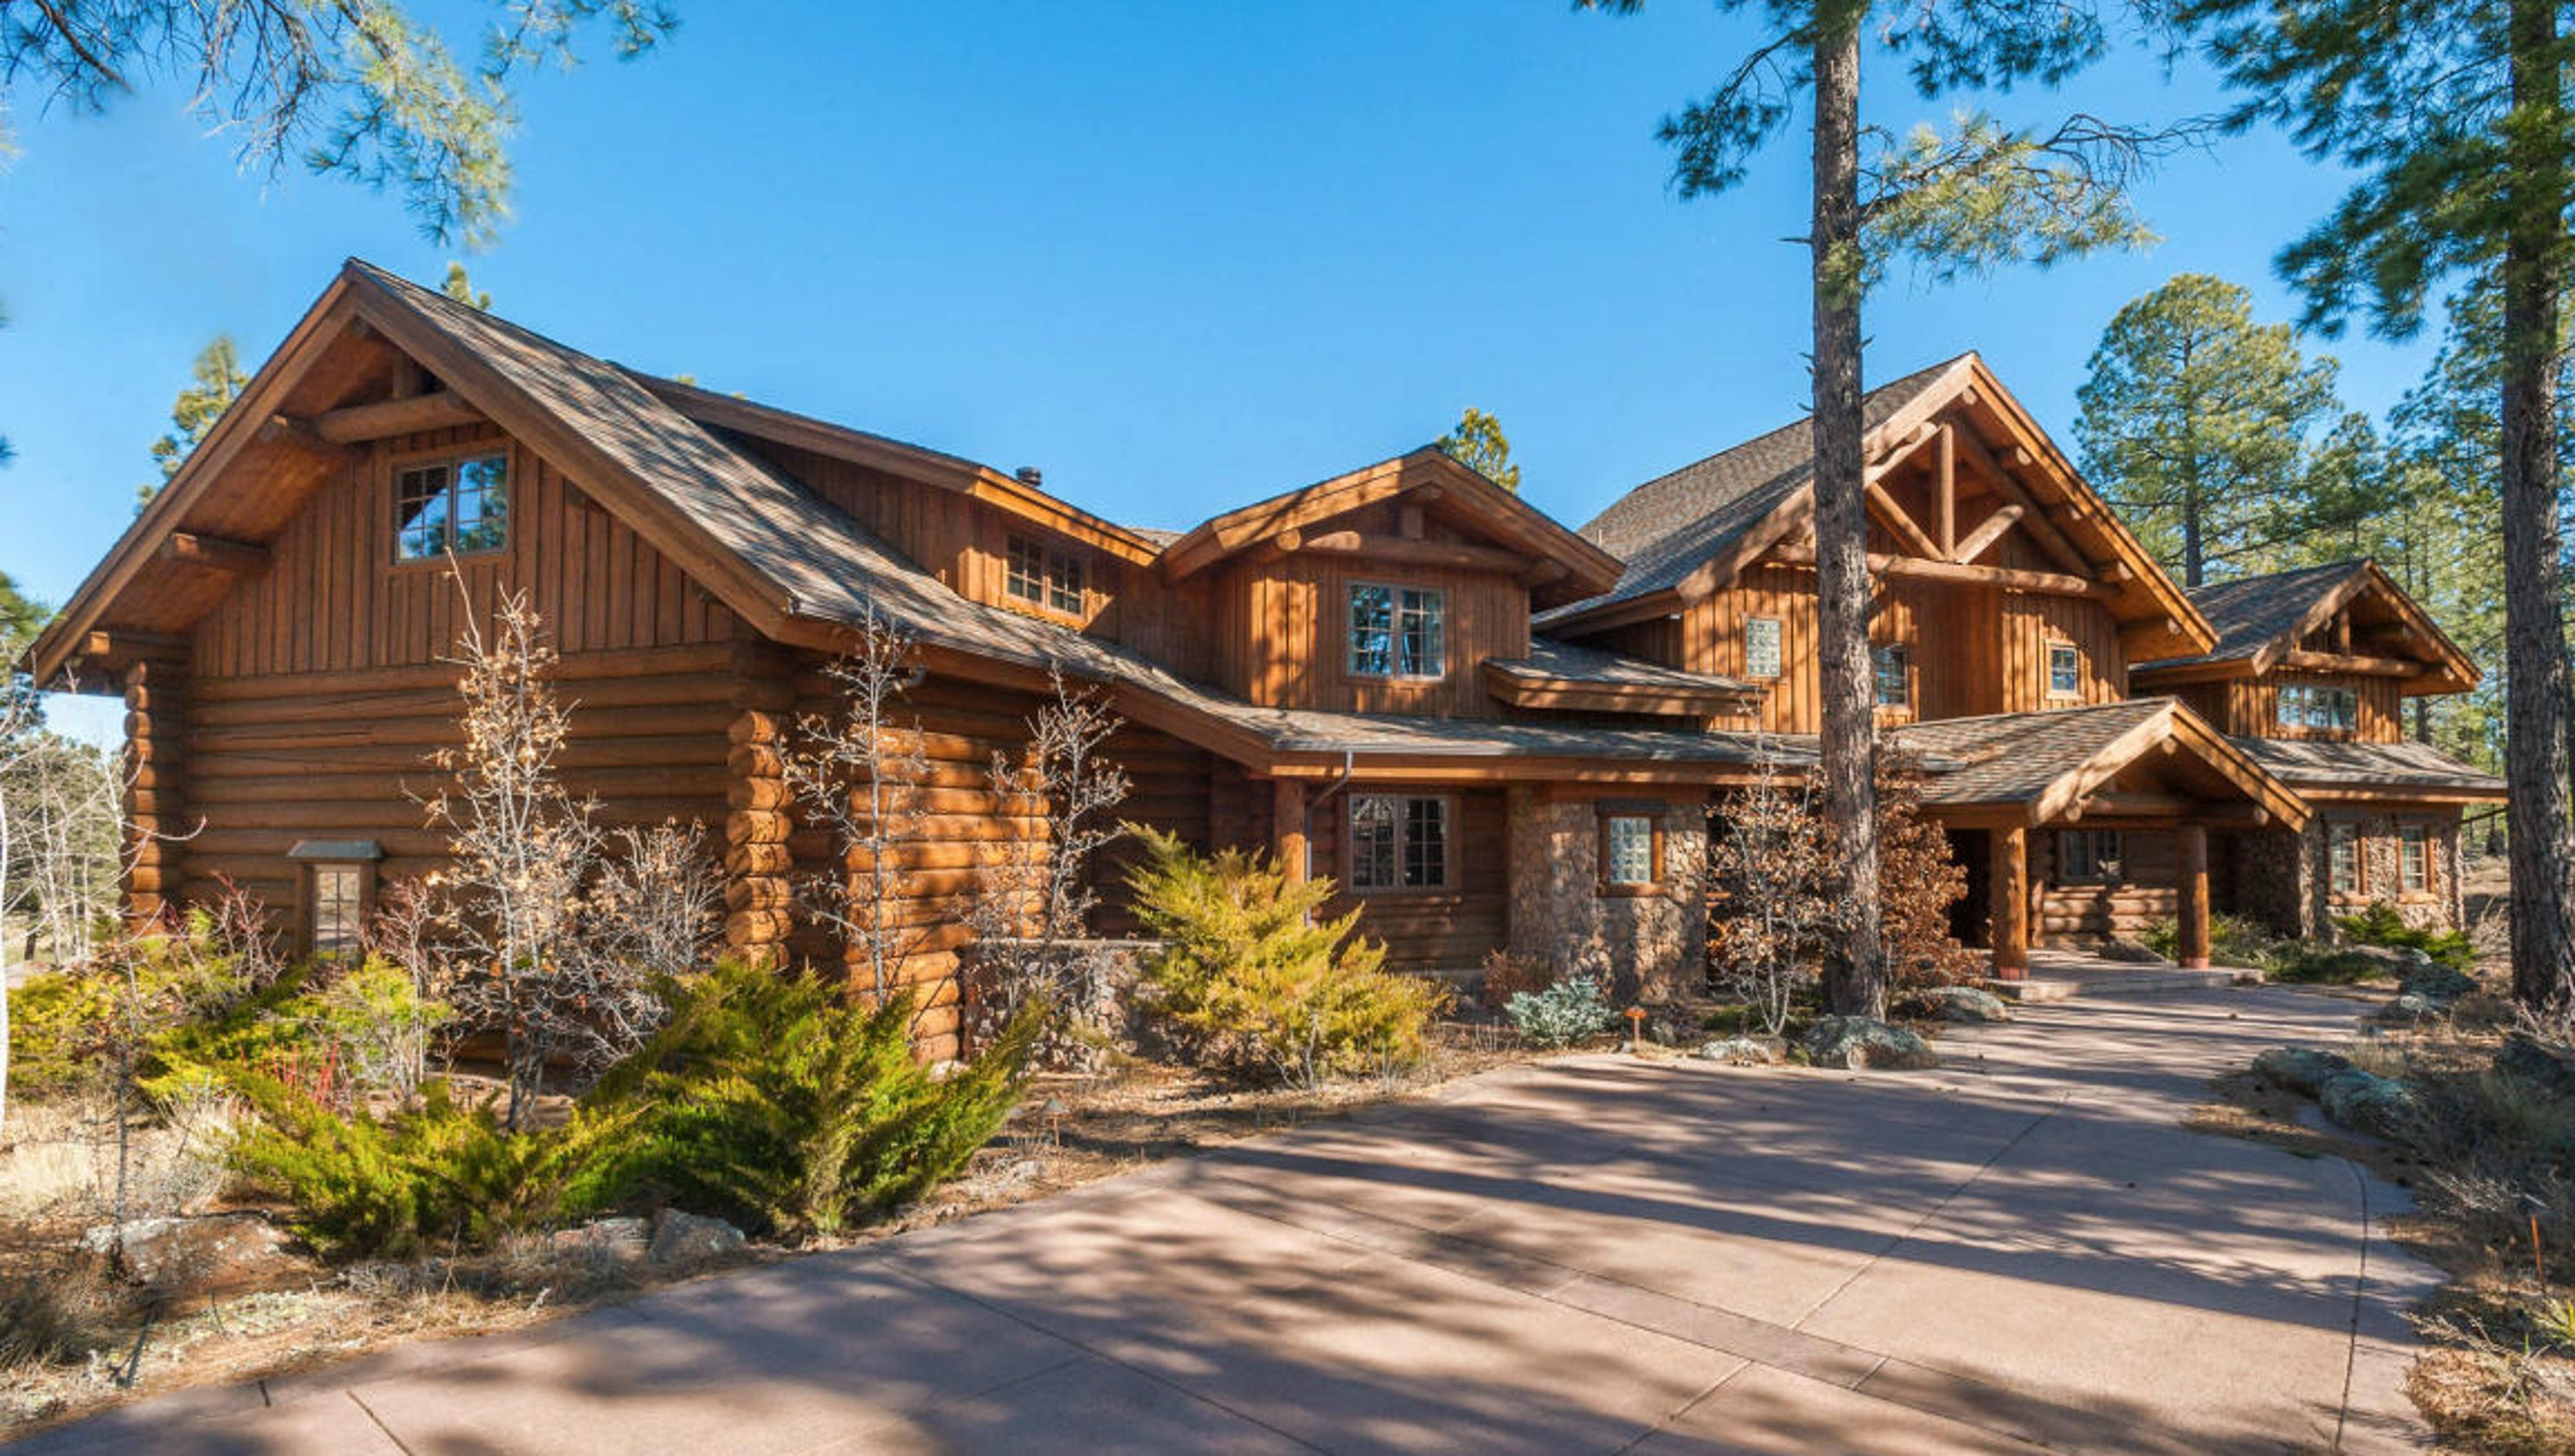 mobile homes for sale in flagstaff az with 81549720 on 21 5523226 also 18409719 moreover Fairview Historic District besides Thehomeoutletaz moreover 21 5372808.